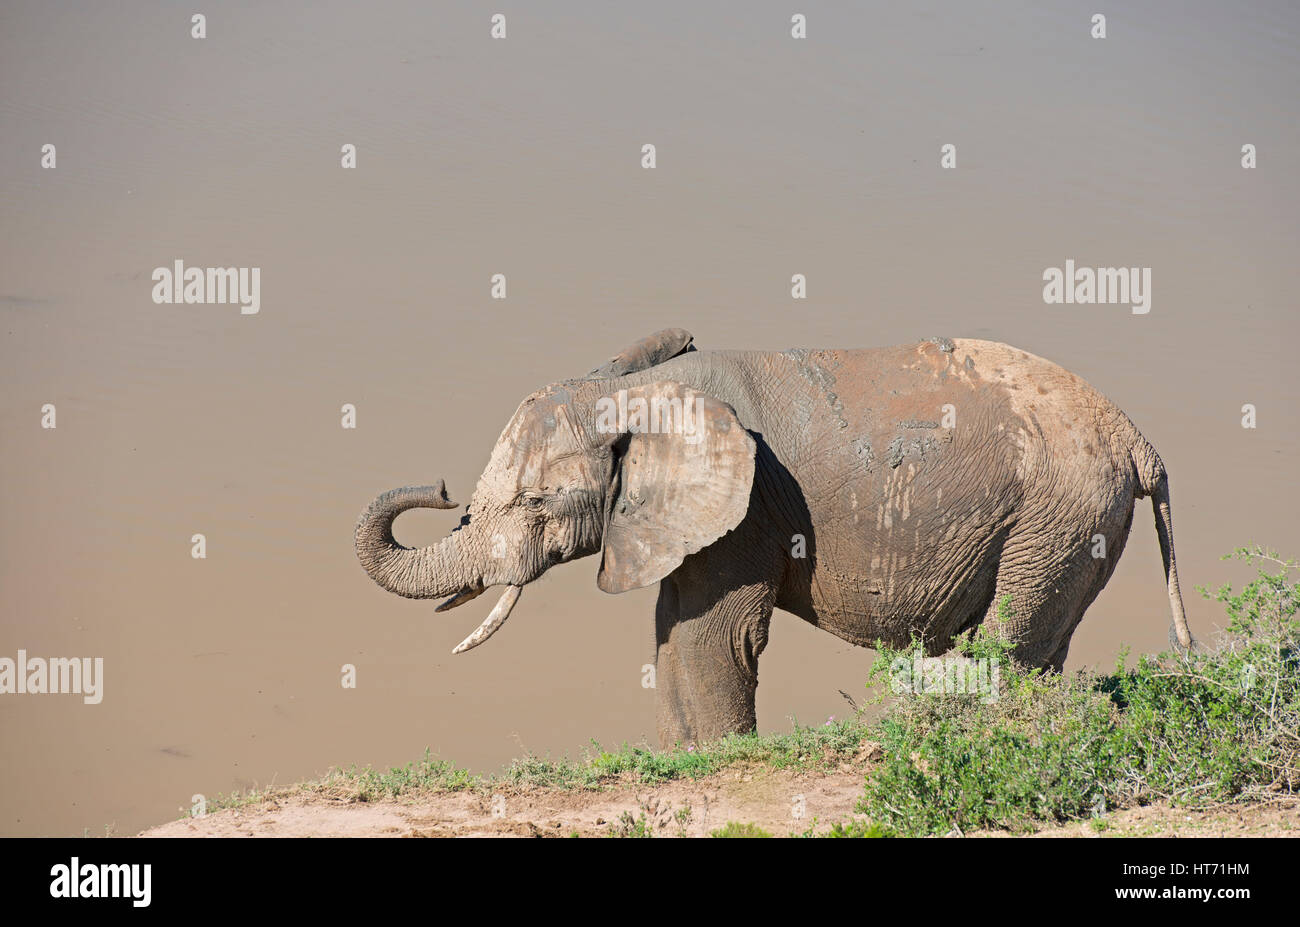 Elephant with mud lifting trunk Stock Photo